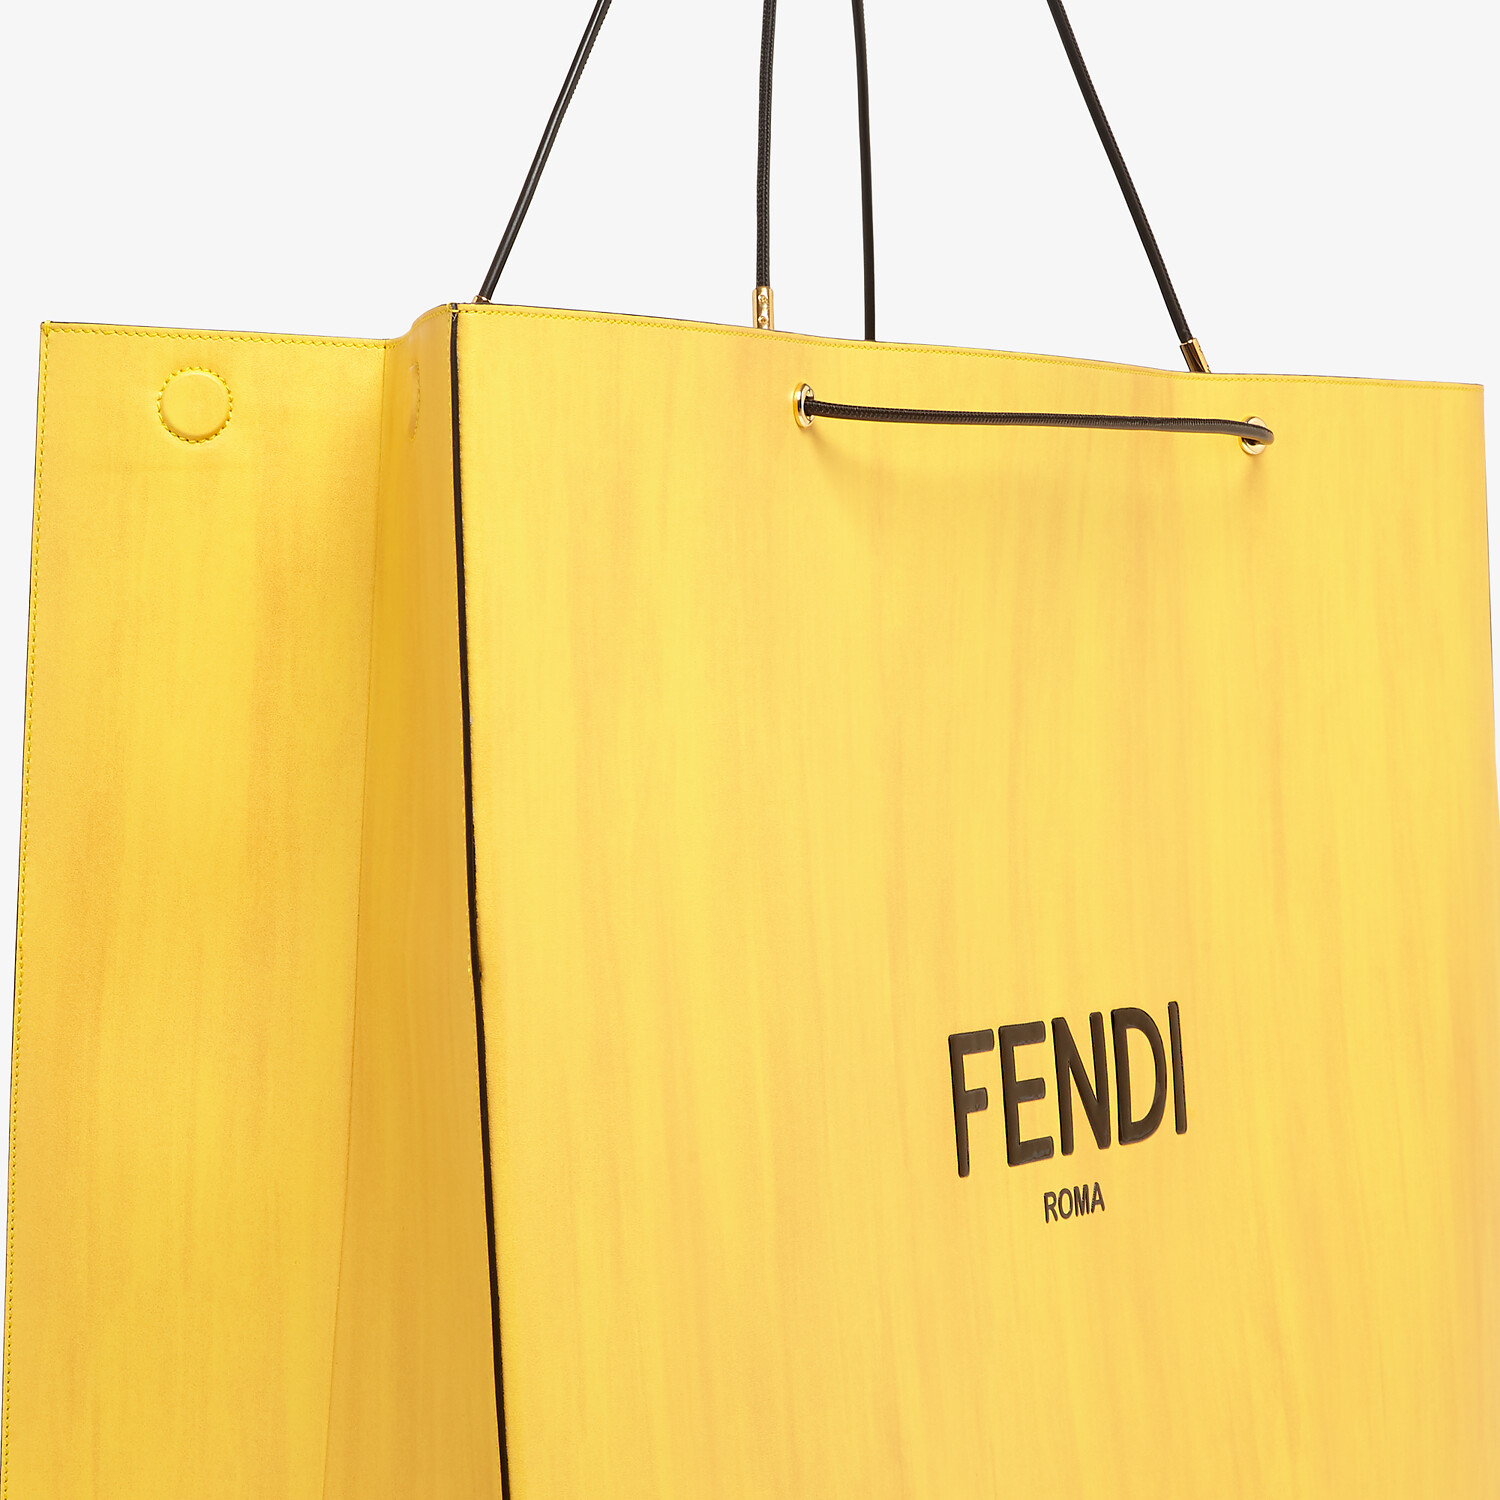 FENDI FENDI PACK LARGE SHOPPING BAG - Yellow leather bag - view 5 detail